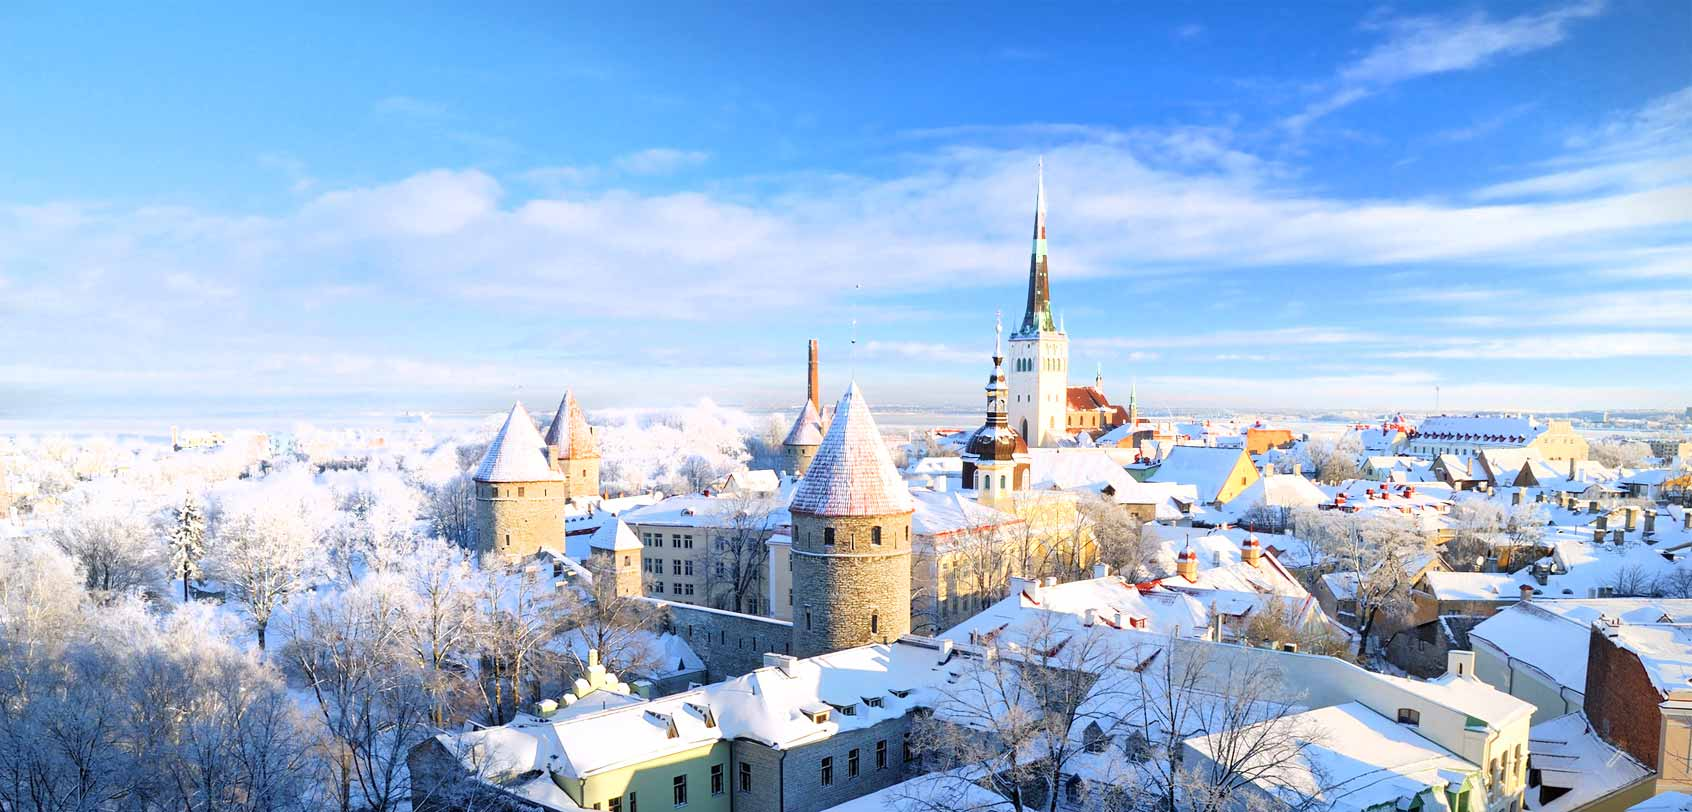 tallinn-estonia-in-winter-estonia-vao-mua-dong-mixtourist